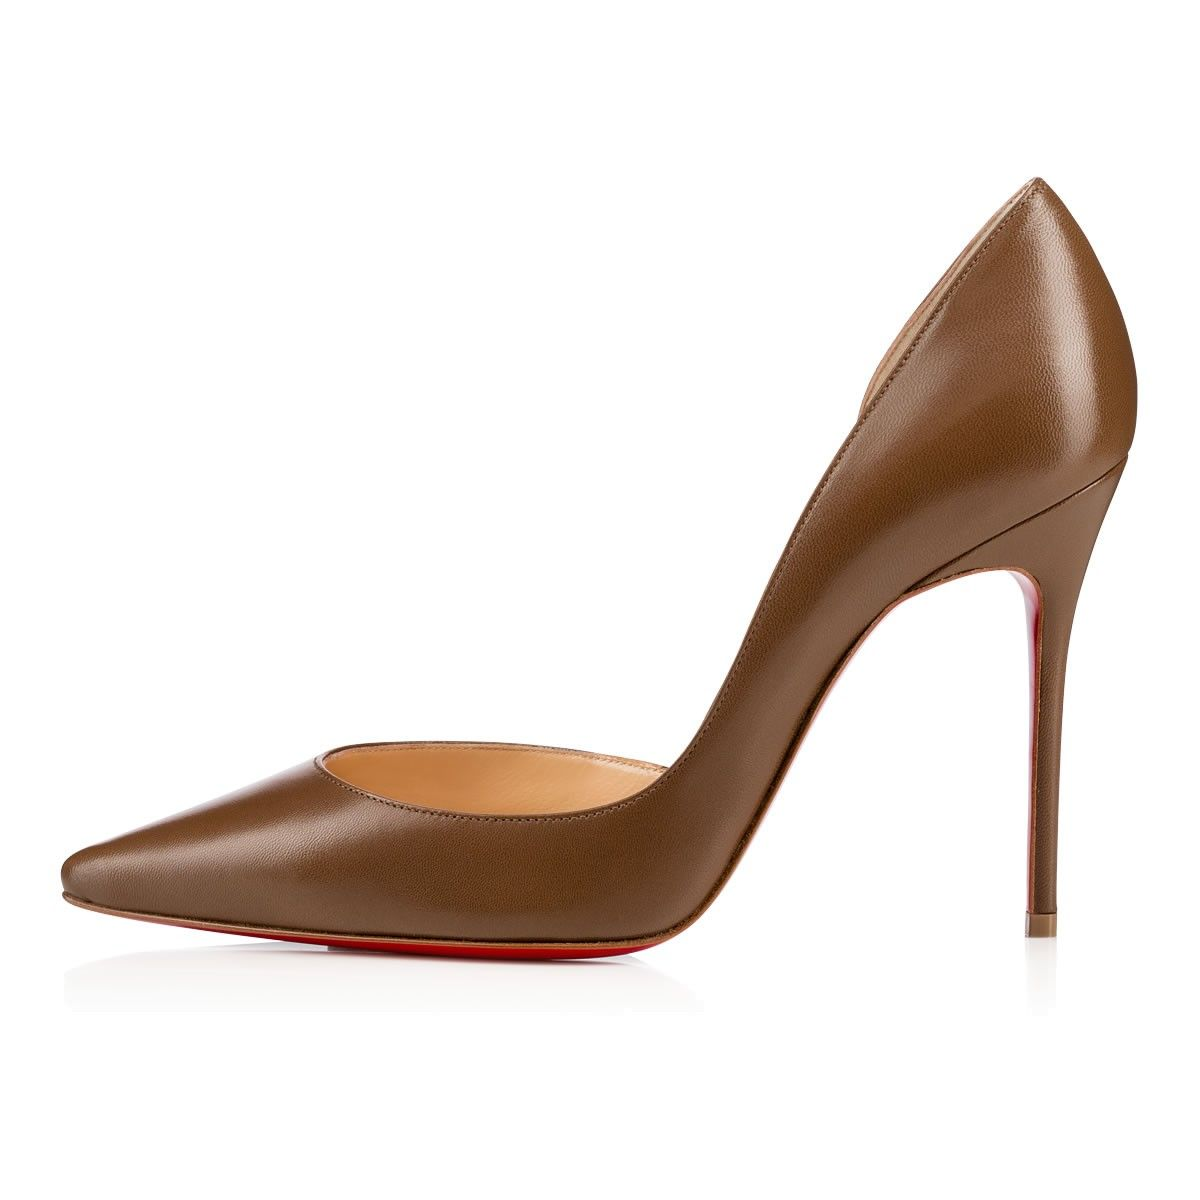 Christian Louboutin United States Official Online Boutique - Iriza